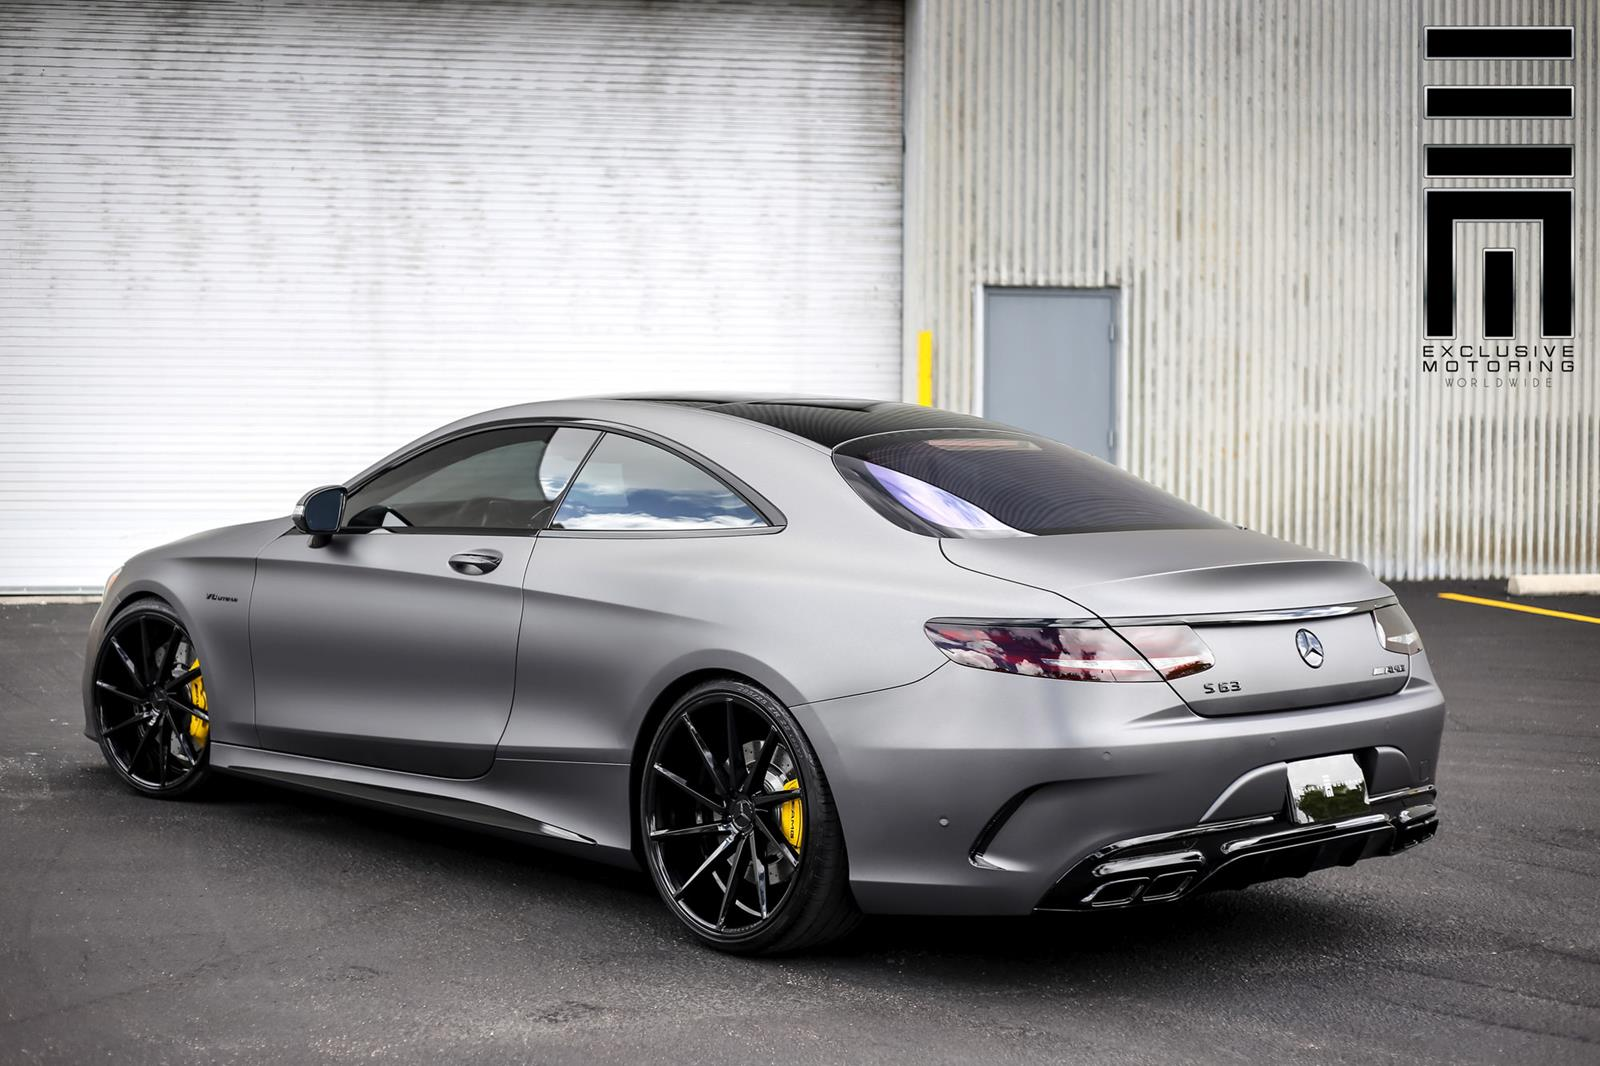 Stealthy matte grey mercedes benz s63 amg coupe gtspirit for Mercedes benz s63 amg 2018